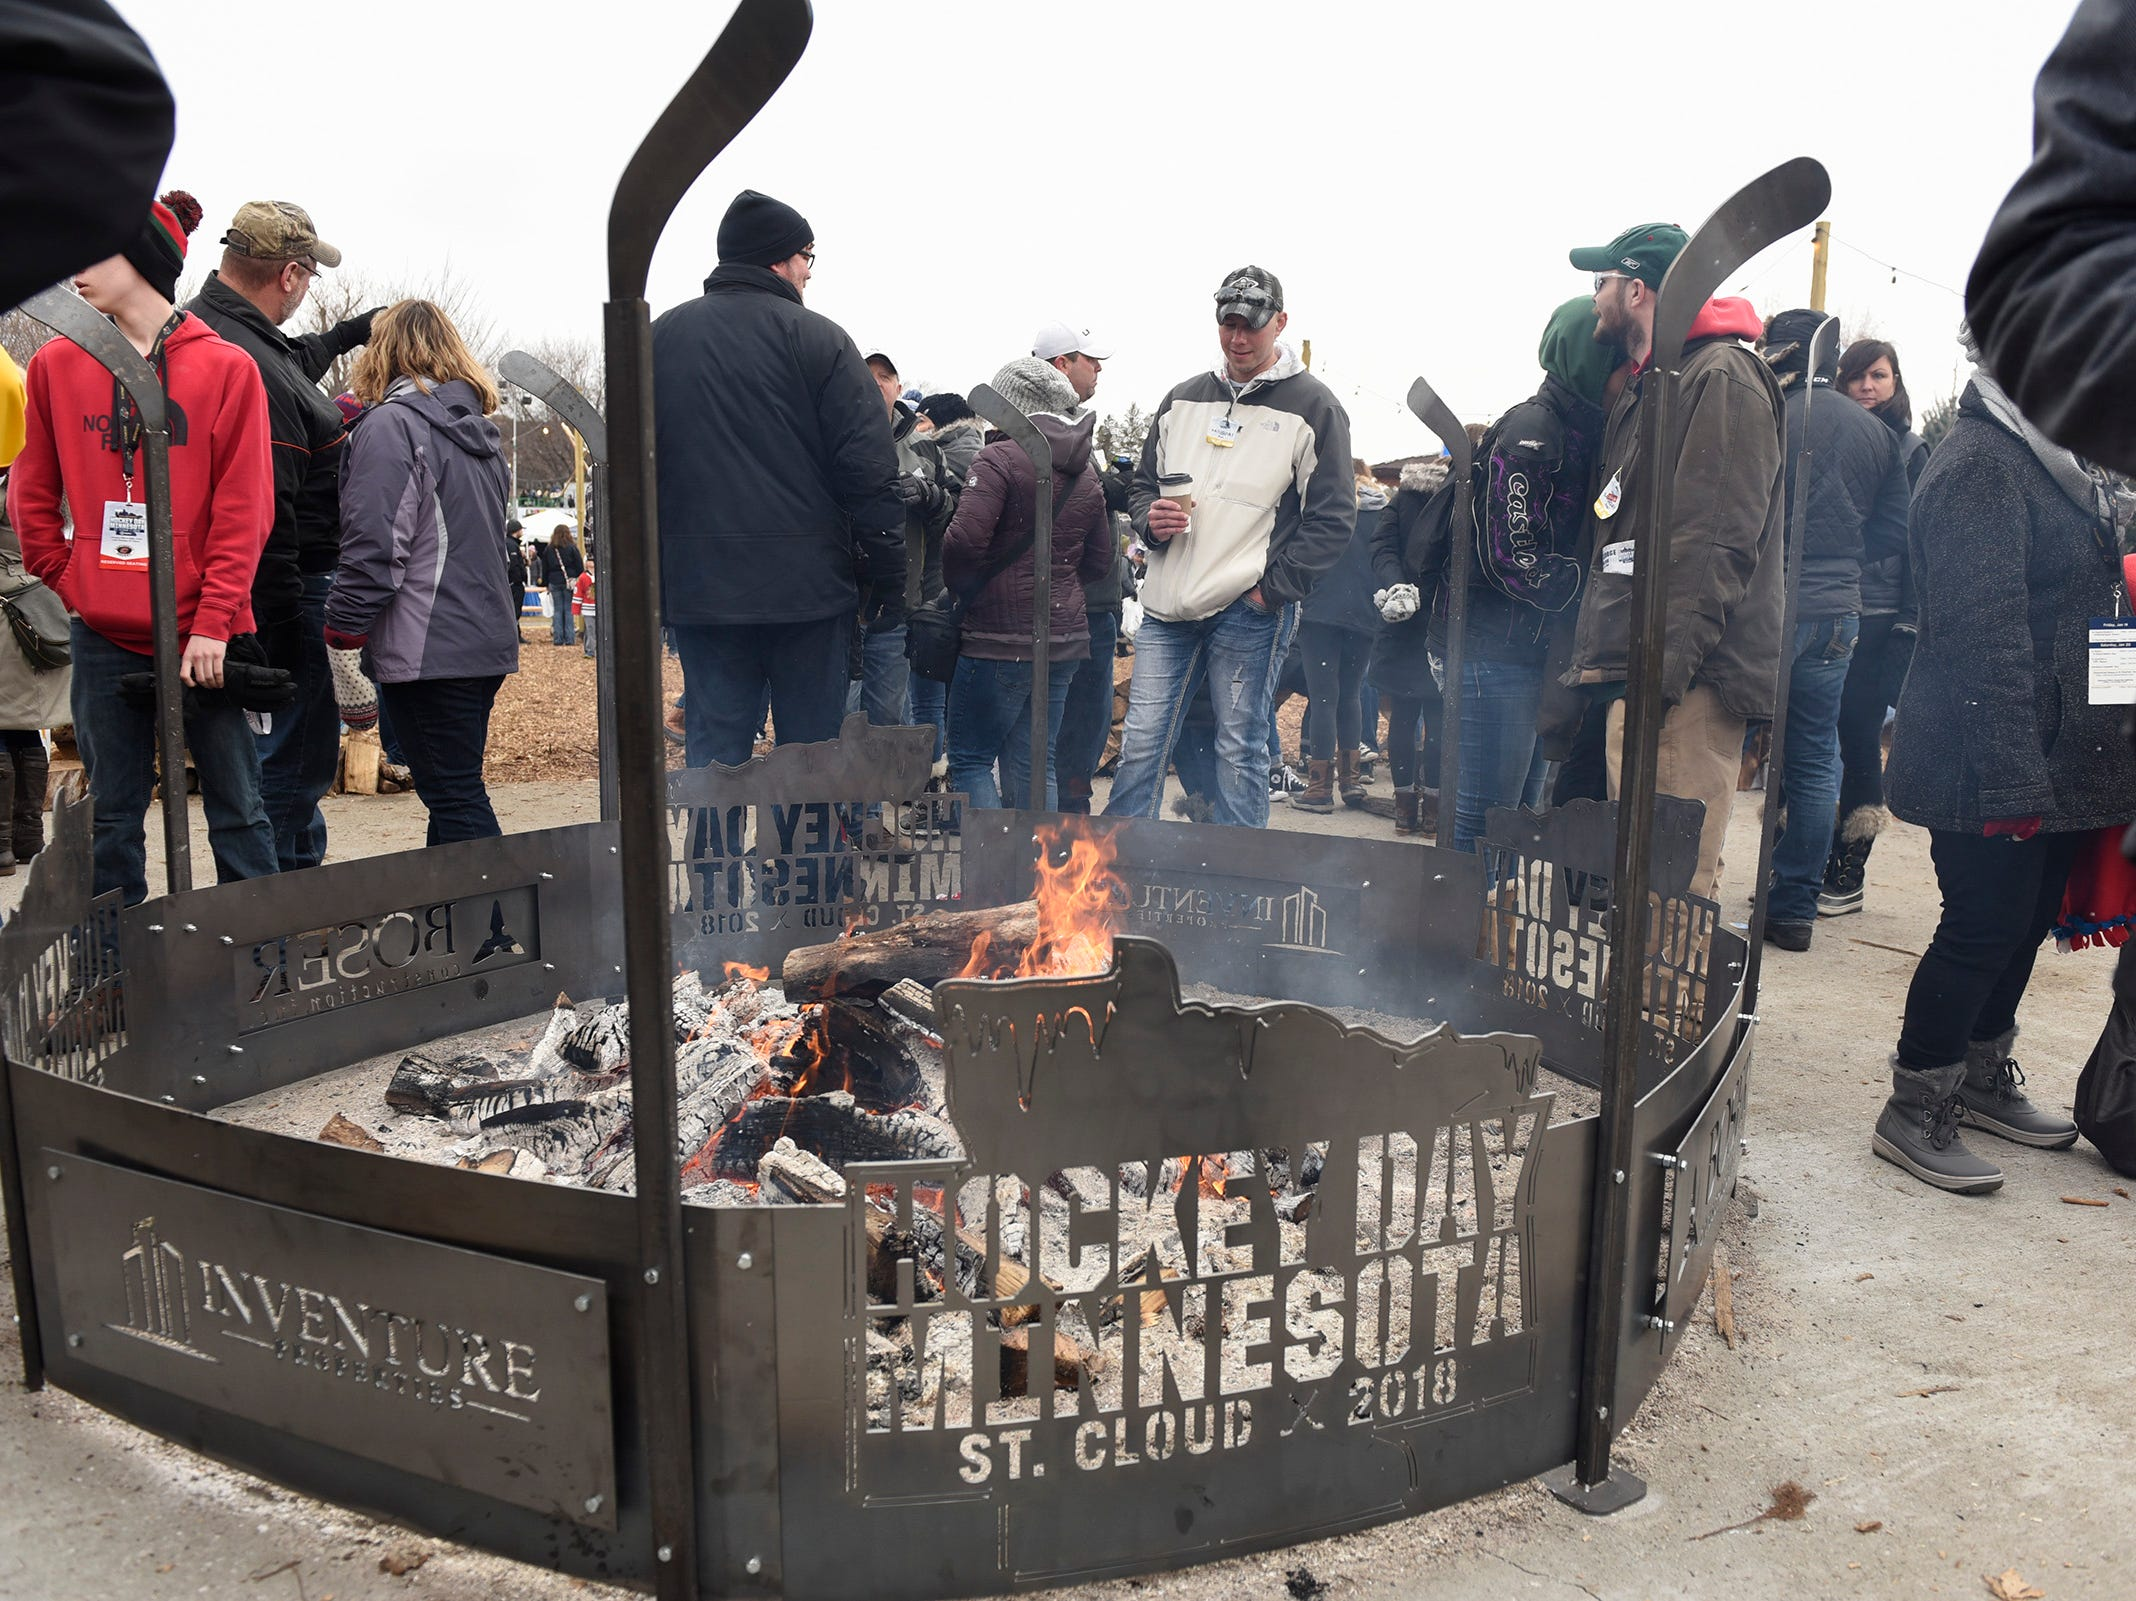 Fans talk by the fire pit Saturday, Jan. 20, during Hockey Day Minnesota at Lake George.